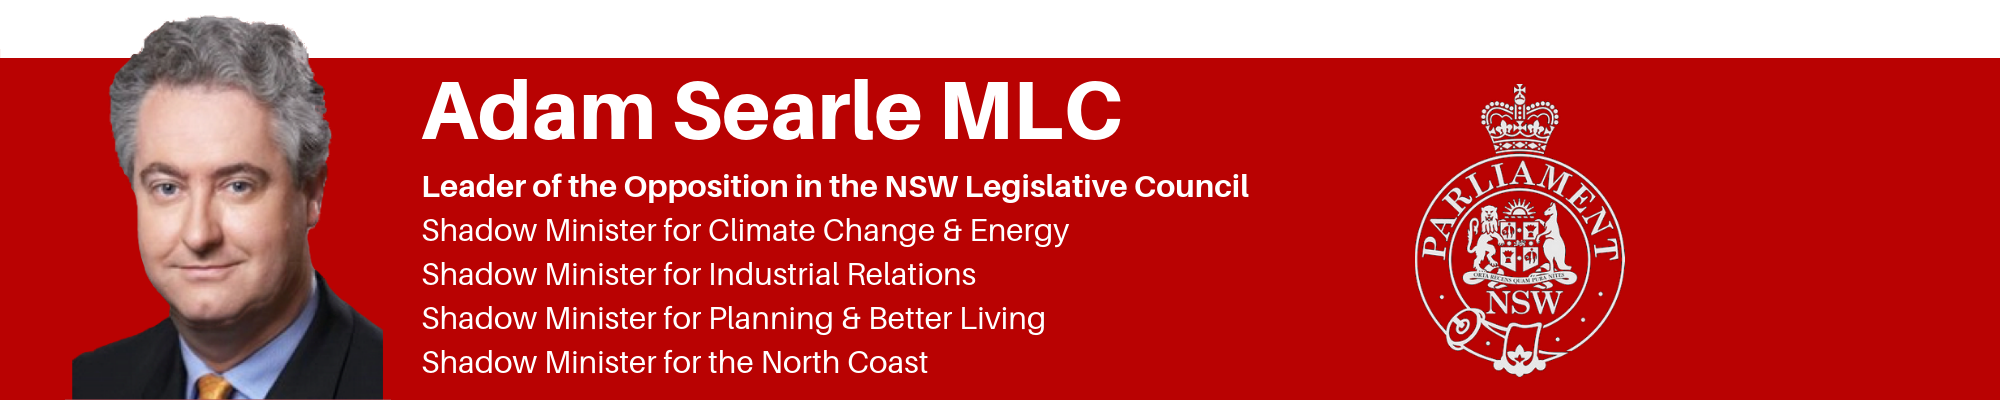 Media & Press Releases | Adam Searle MLC